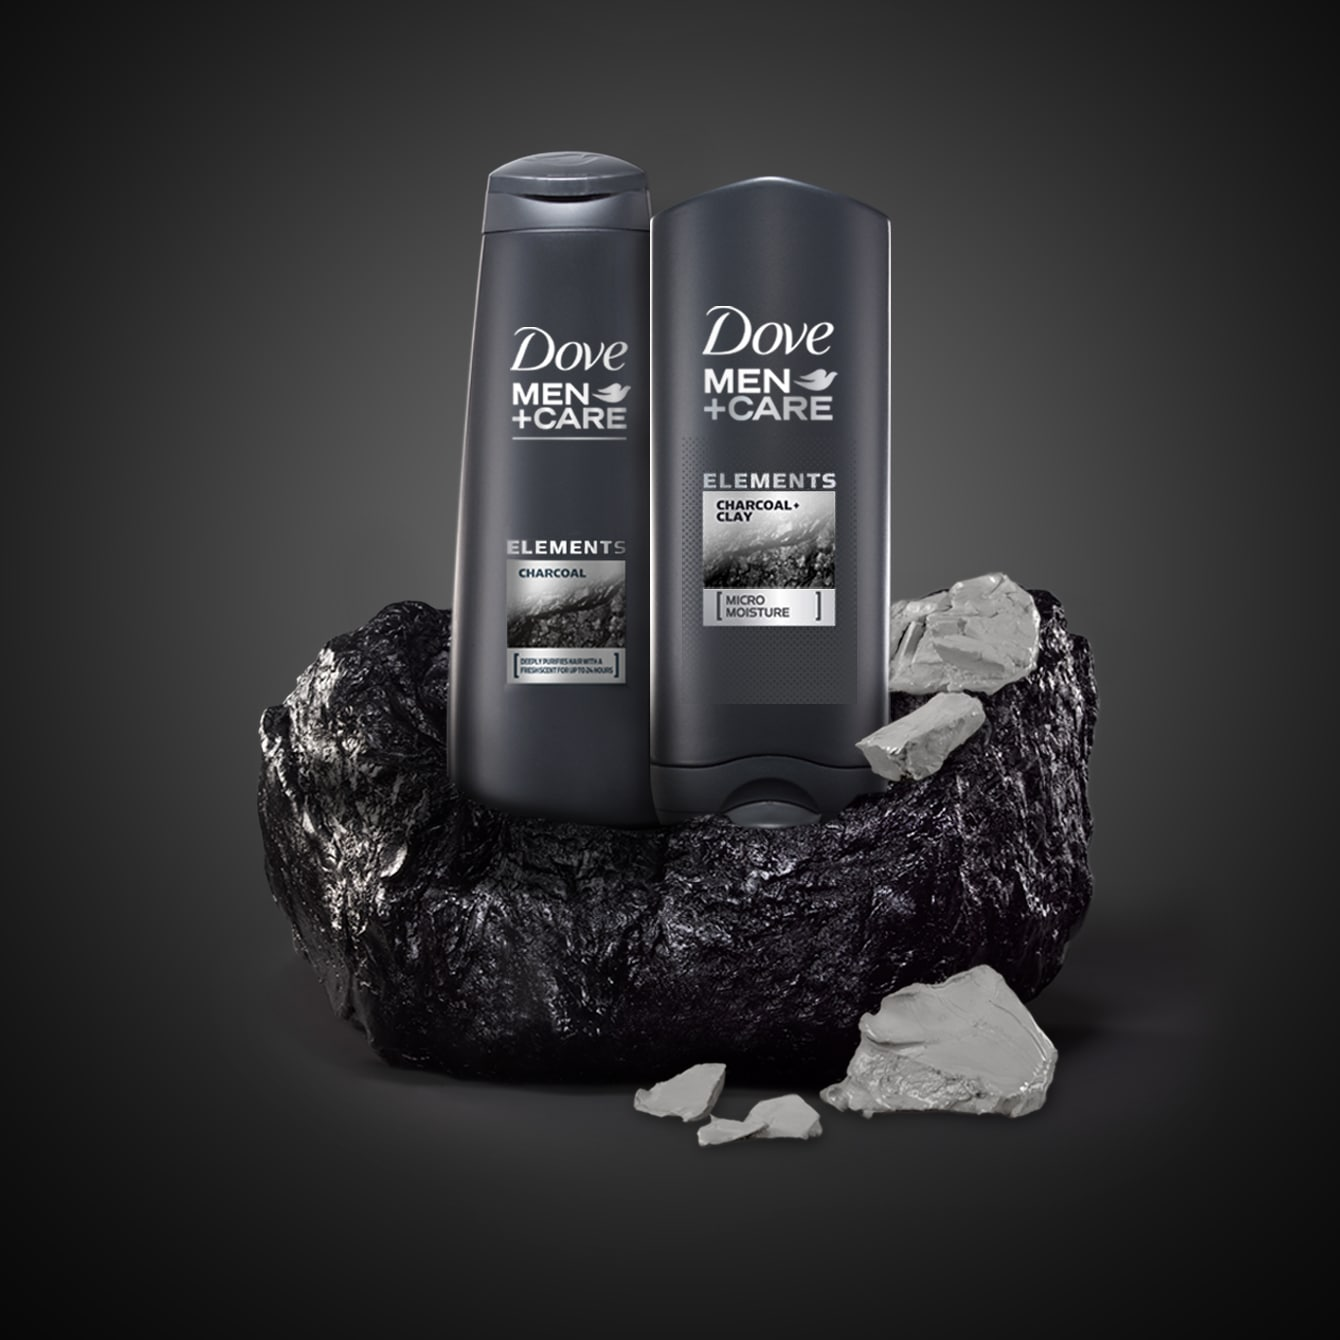 Charcoal Clay Dove Men Care